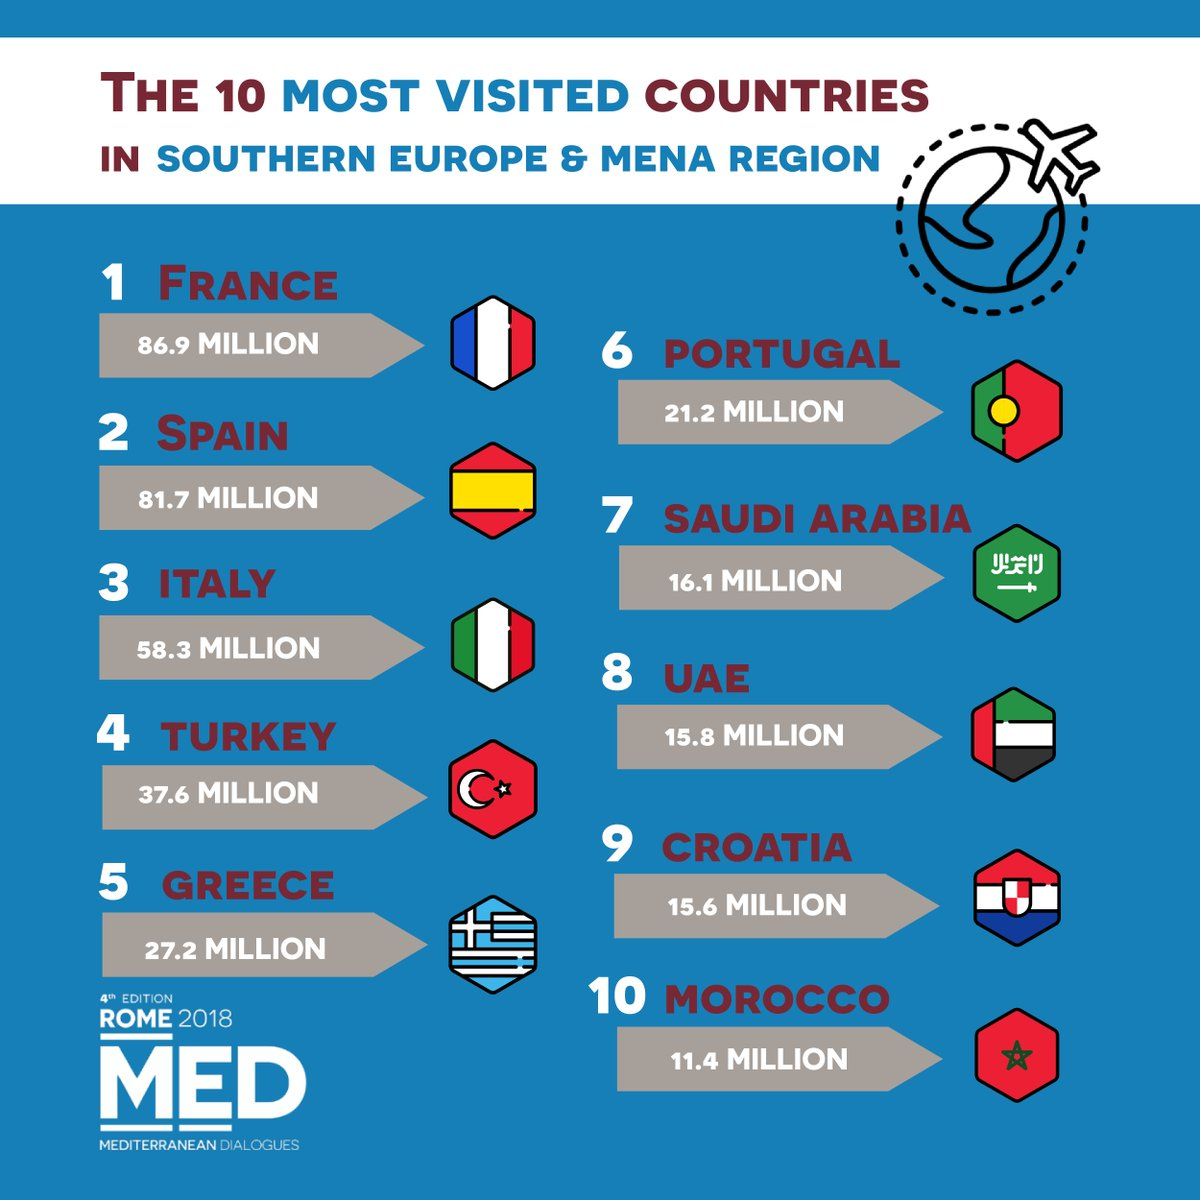 Tourism is one of the most important sources of employment and wealth for Southern Europe, Middle East & North Africa. And it is also a driver of cultural enrichment. We will talk about it at  → #Med2018https://t.co/shY9iFOAsJ